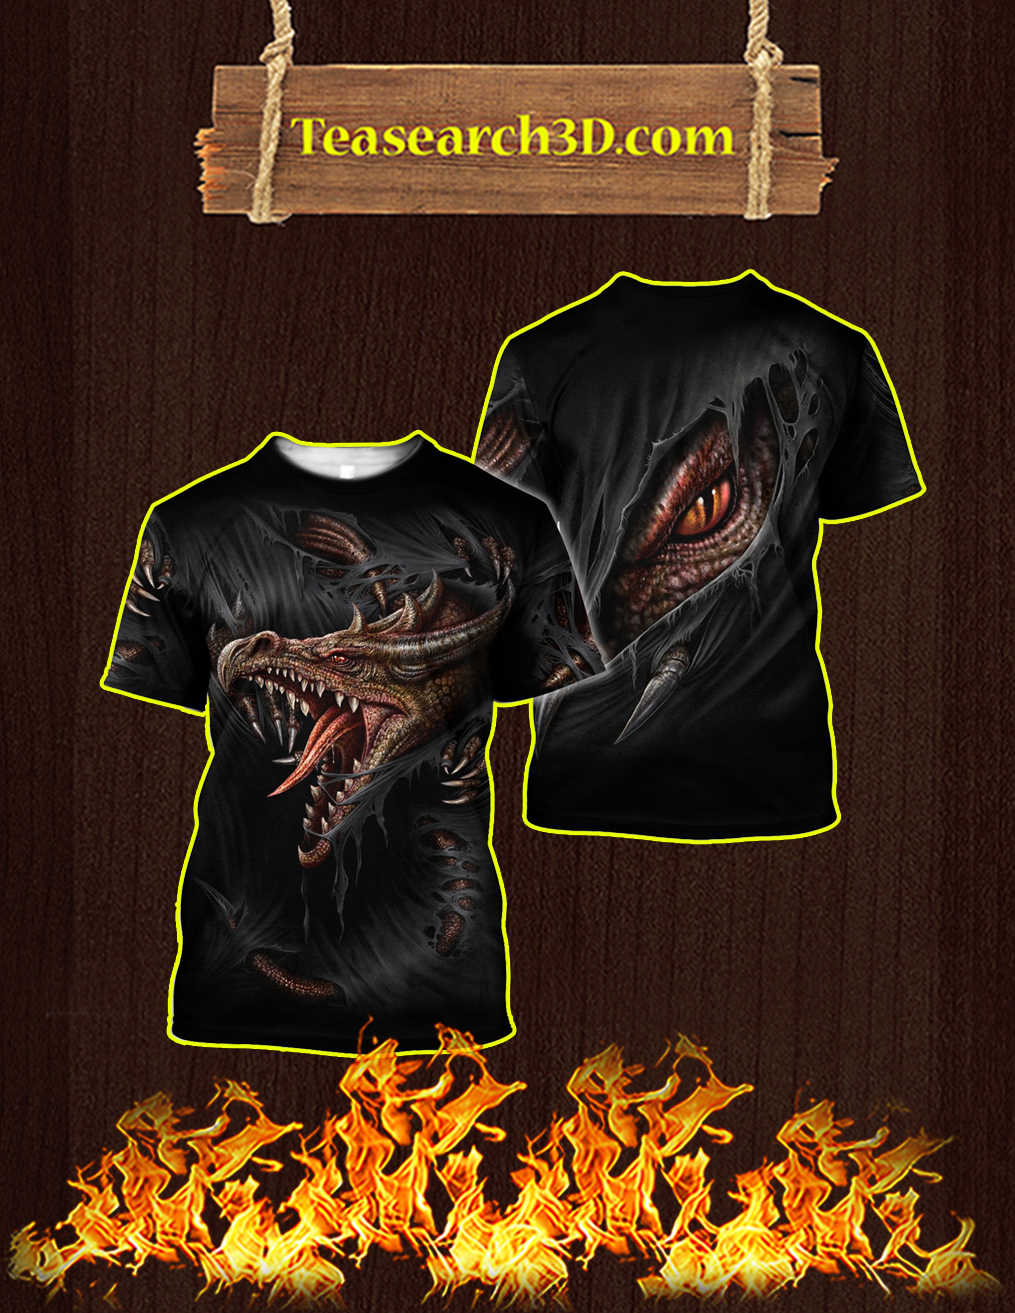 3D Armor Tattoo and Dungeon Dragon T-shirt